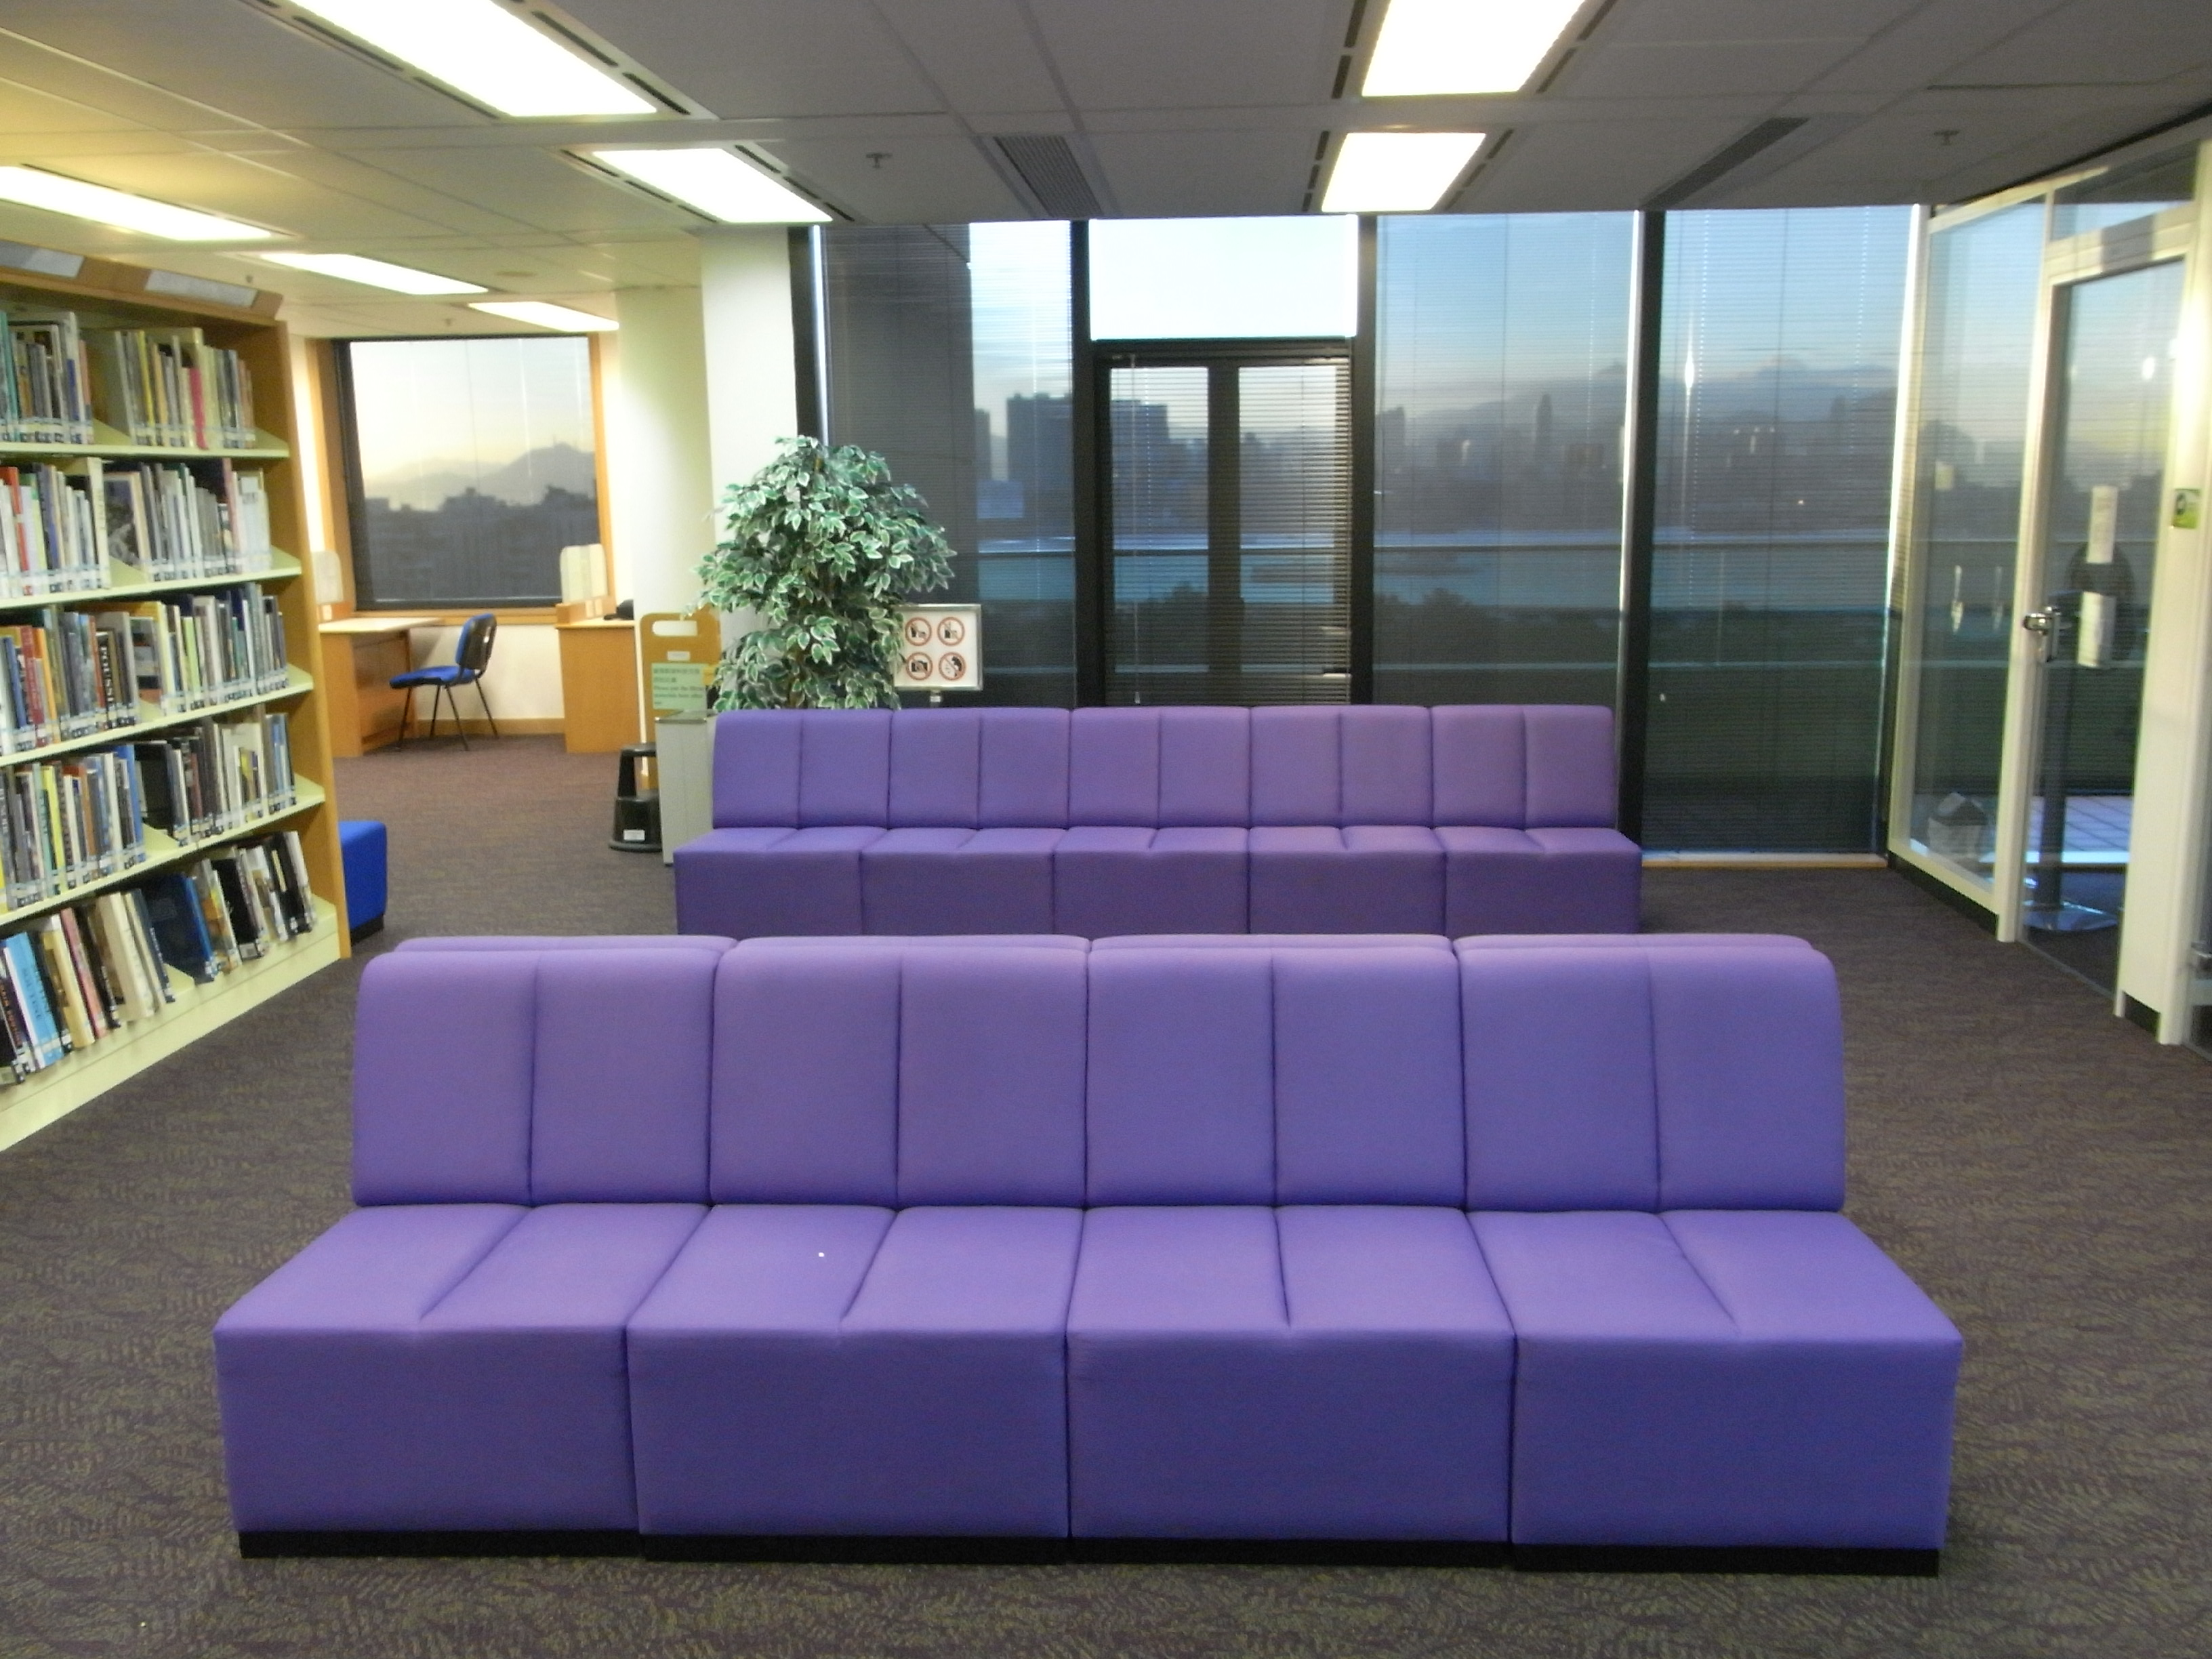 File Hk 香港中央圖書館 Central Library 10th Floor Interior Lobby Sofa In Purple